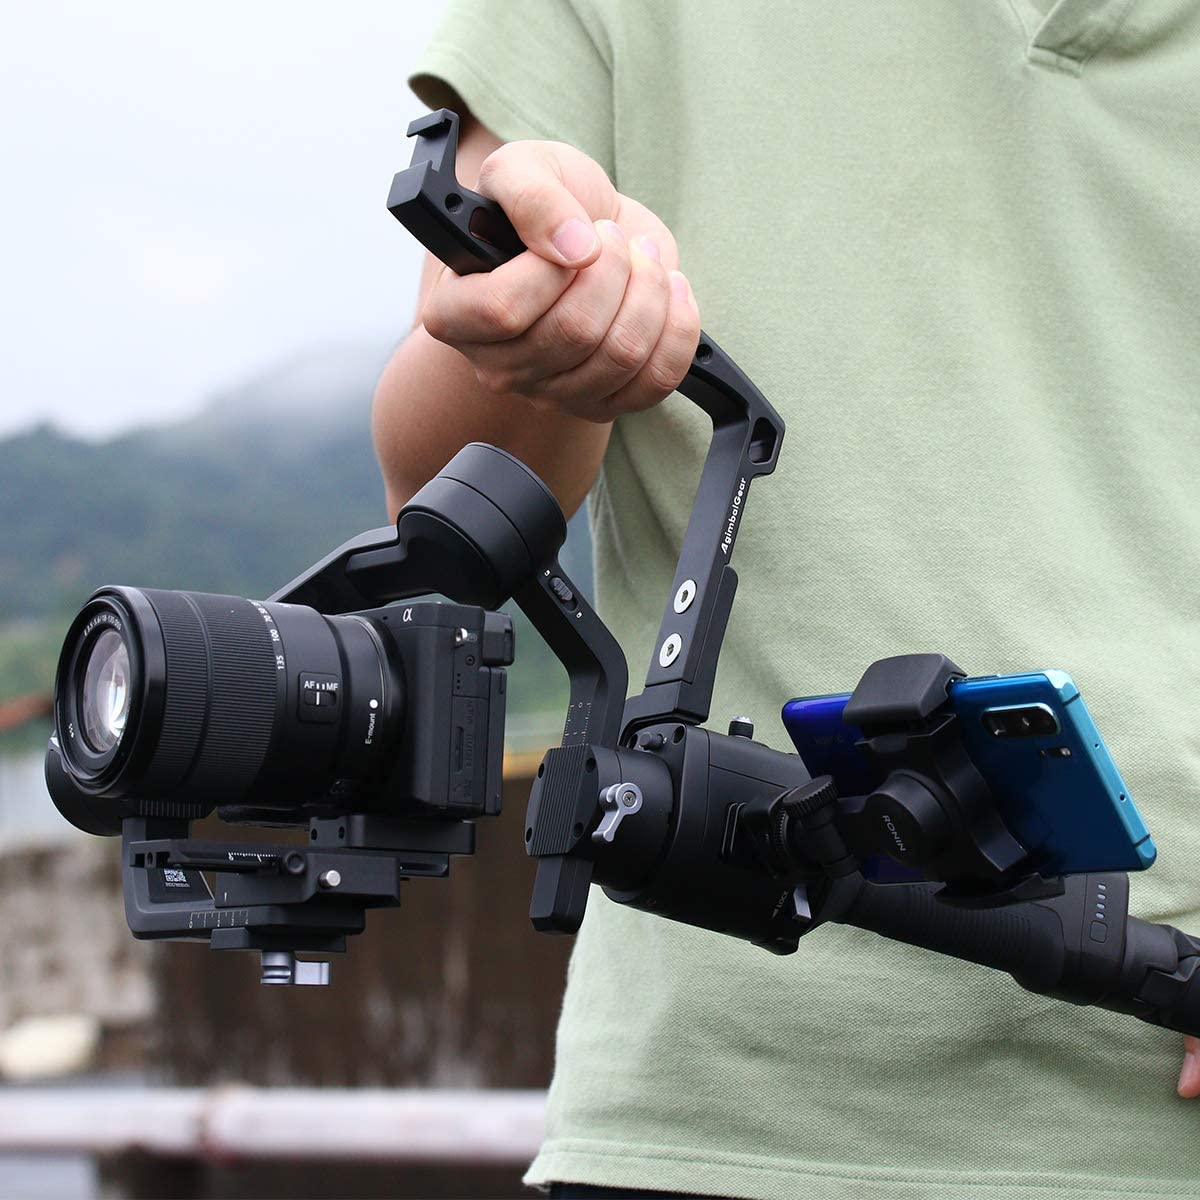 AgimbalGear DH09 Inverted Handheld Grip for Crane 2 Cold Shoe Mount Connect Monitor Mic Comfortable Metal Handle for Low Position Videography Compatible with ZHIYUN Crane 2//Plus FEIYU AK 2000 Light